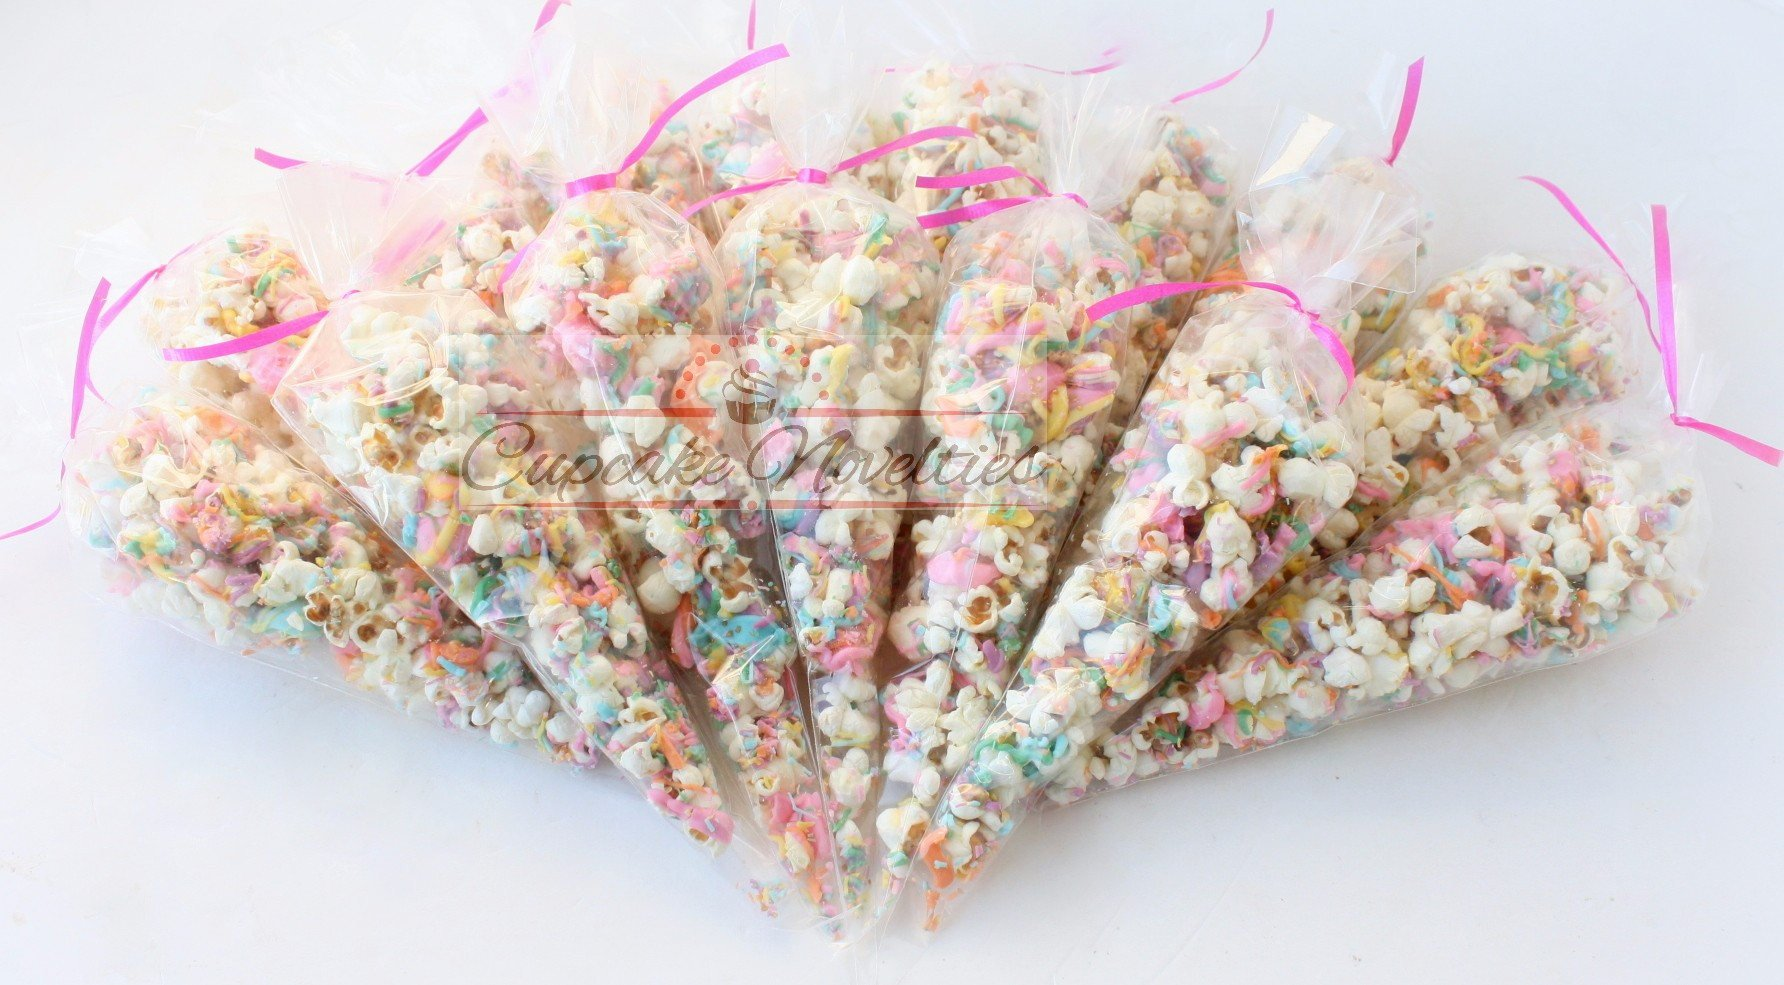 Unicorn Party Unicorn Birthday Favors Unicorn Cookies Unicorn Poop Rainbow Unicorn Party Gold Rainbow Birthday Gold Unicorn Baby Shower Idea